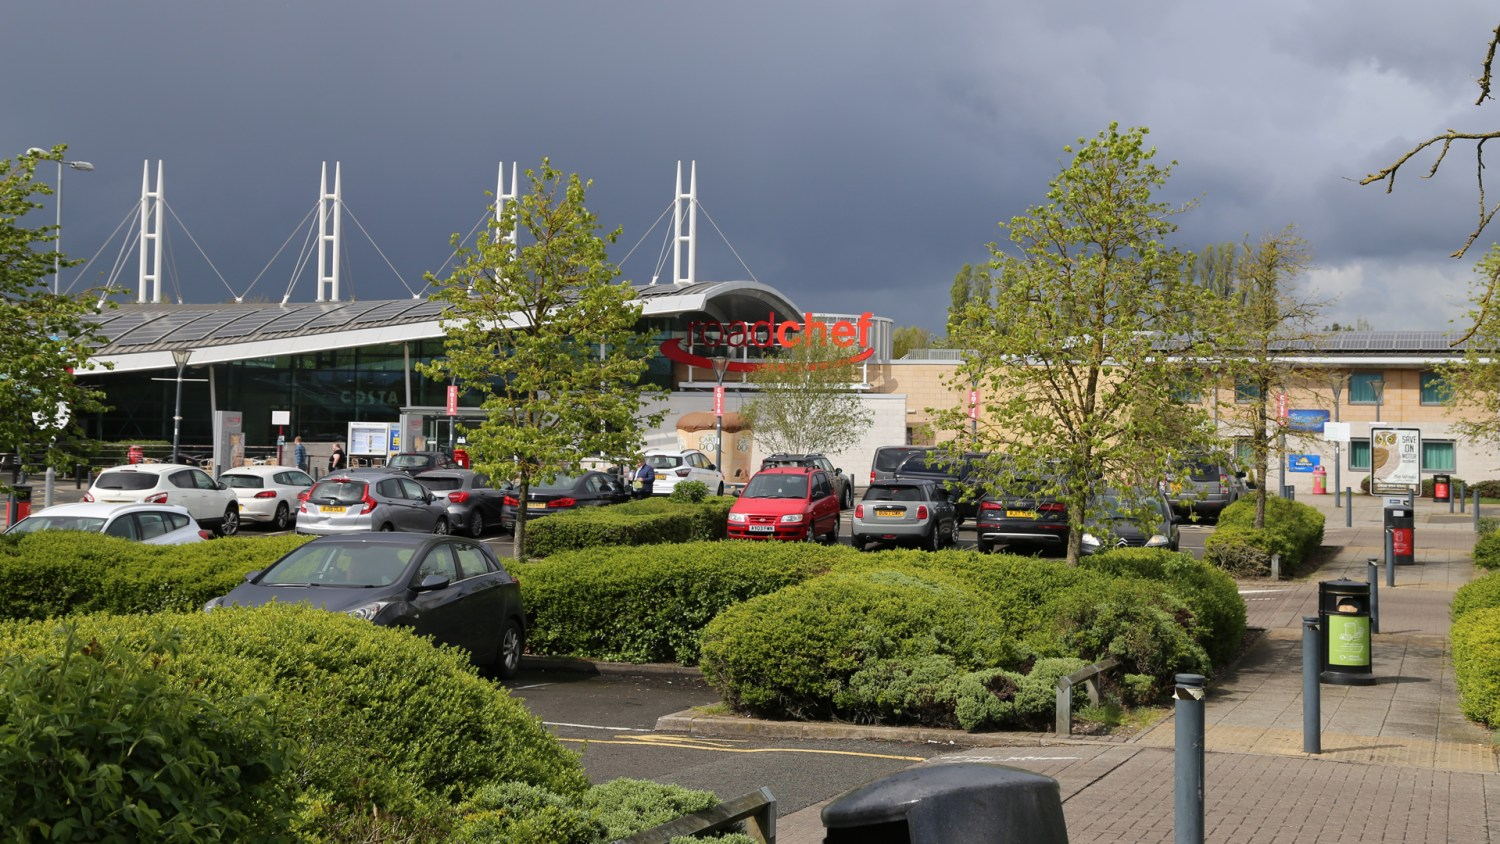 Norton Canes is the best motorway services